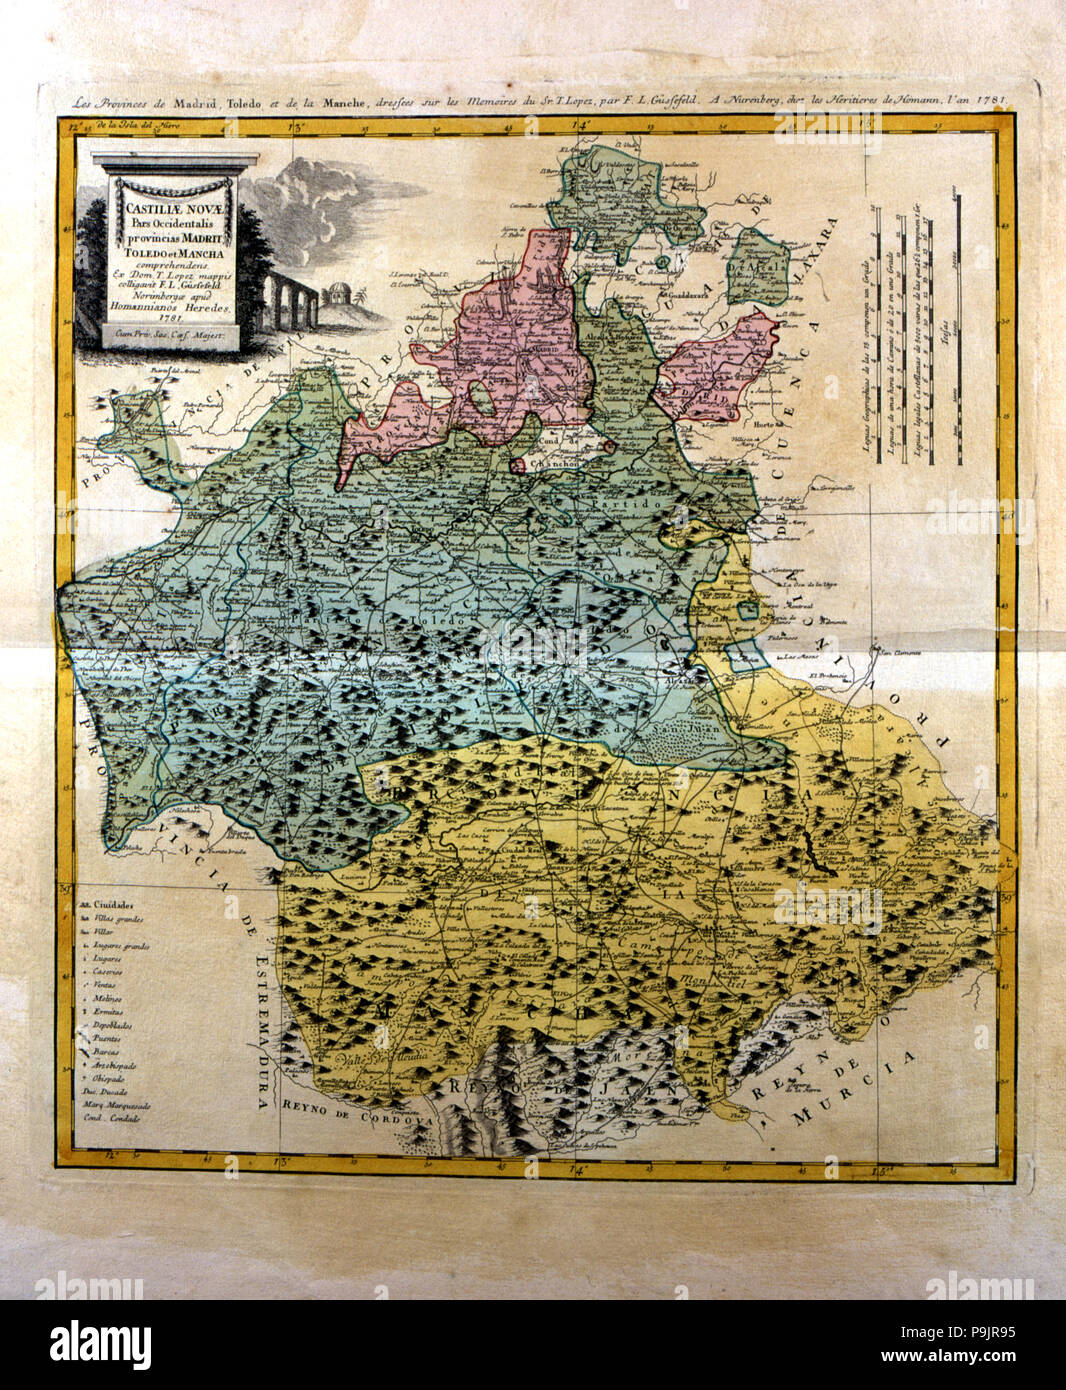 Colored map of Madrid and Castilla - La Mancha, engraved in Nuremberg 1781 by the heirs of Homann… Stock Photo